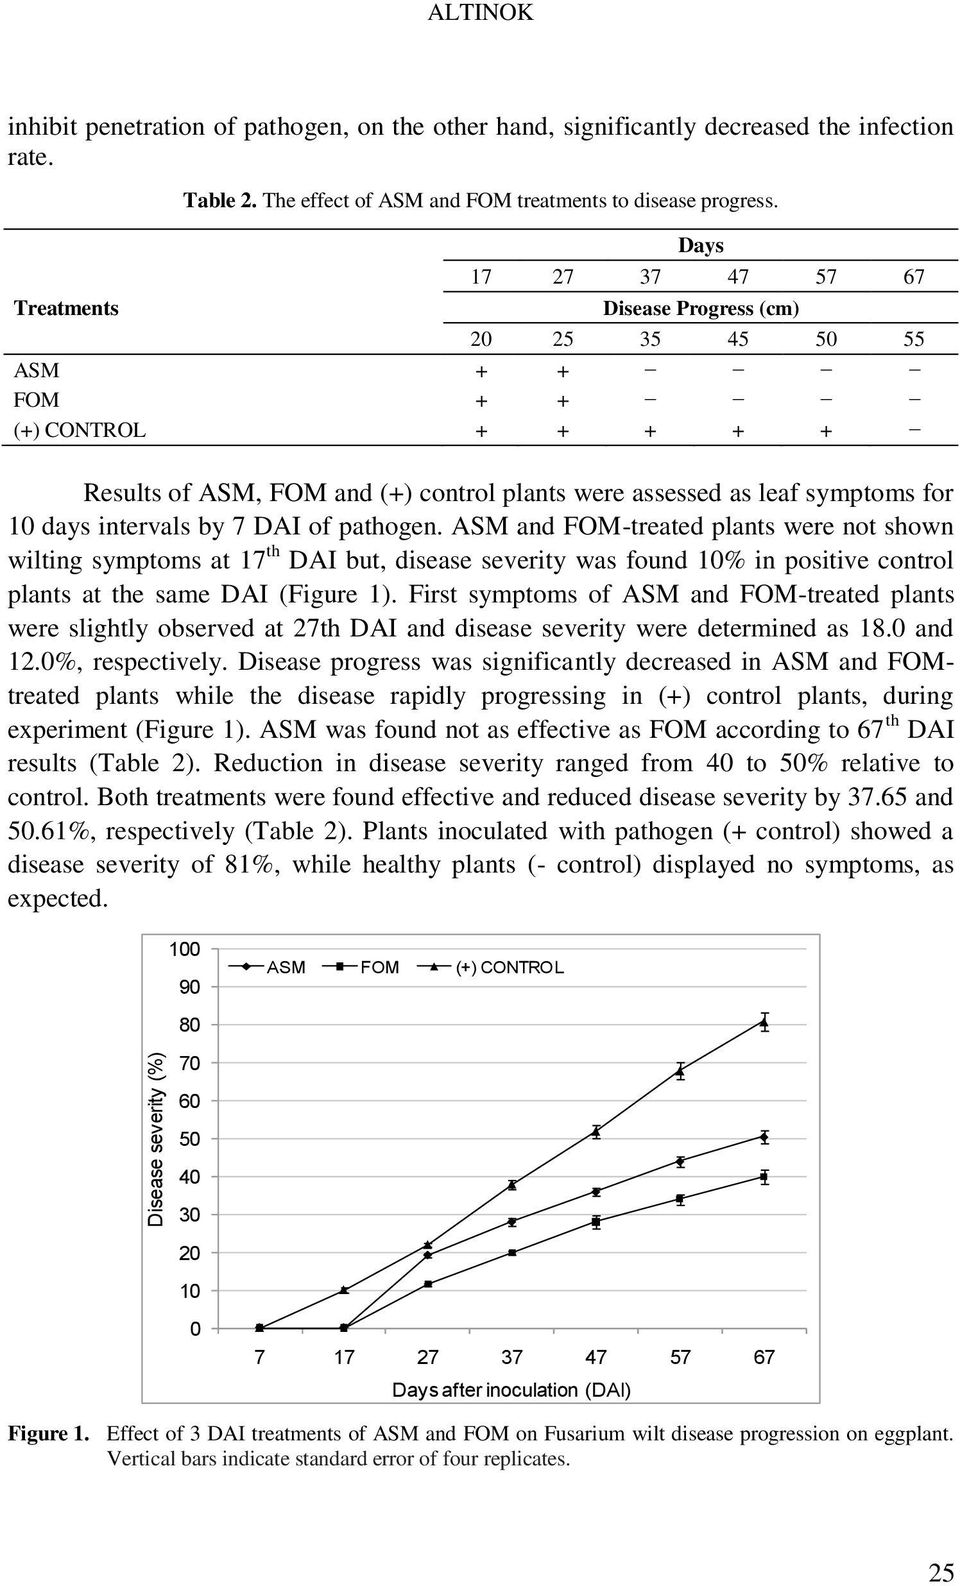 intervals by 7 DAI of pathogen. ASM and FOM-treated plants were not shown wilting symptoms at 17 th DAI but, disease severity was found 10% in positive control plants at the same DAI (Figure 1).